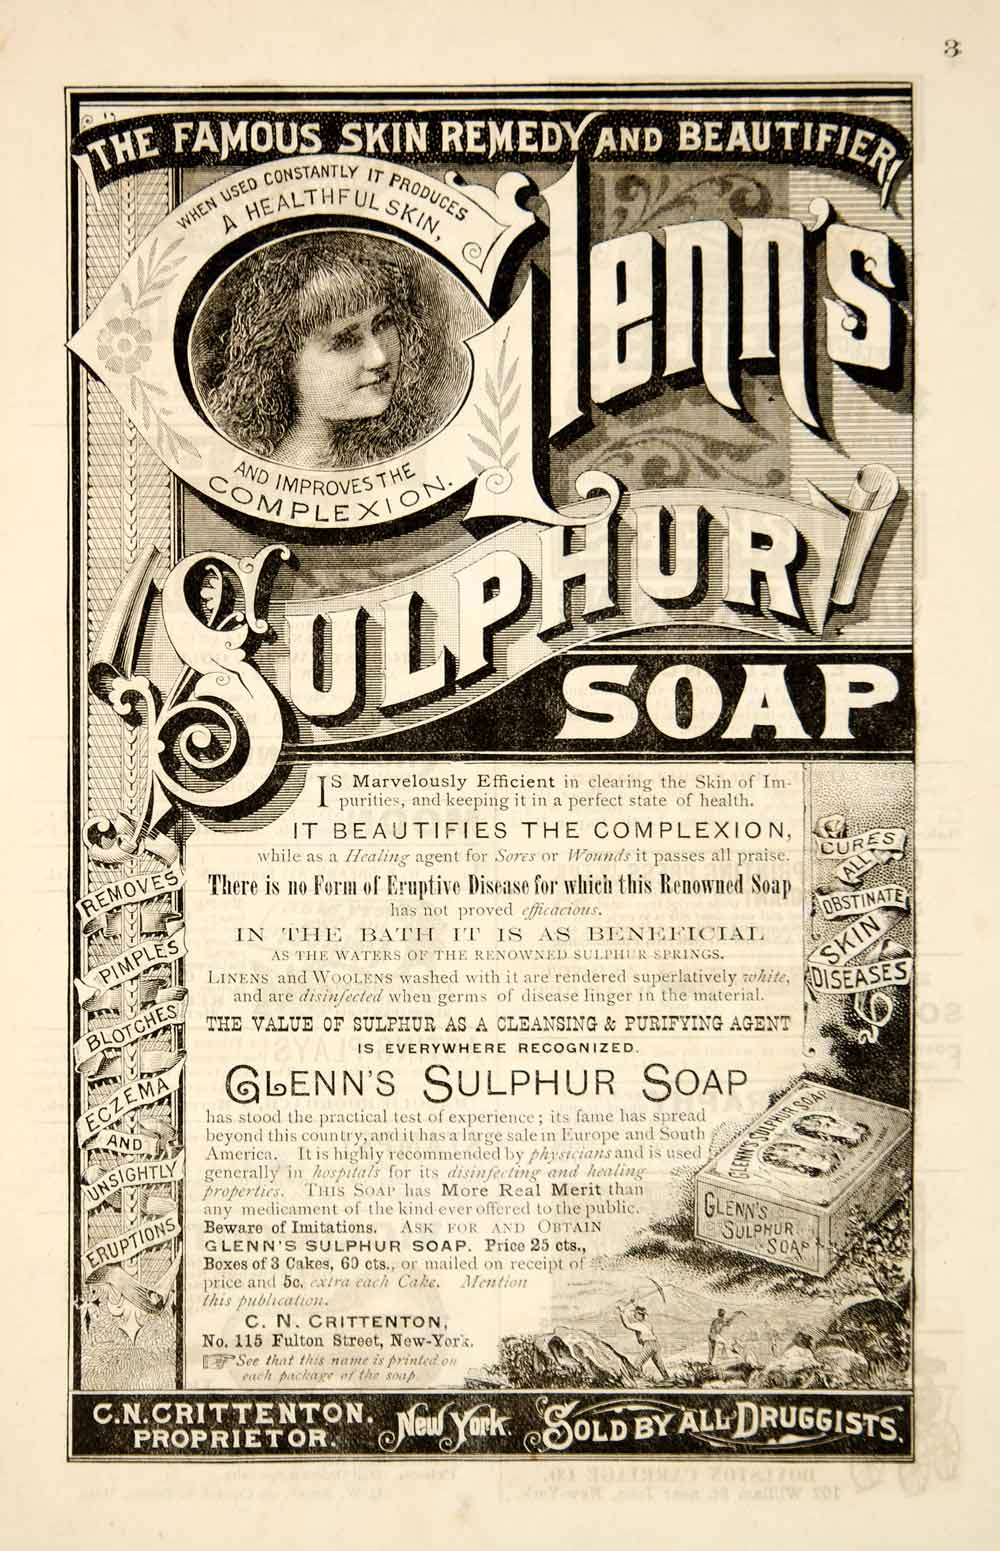 1886 Ad Antique Glenn's Suphur Soap Complexion Victorian Skin Care Beauty YSN1